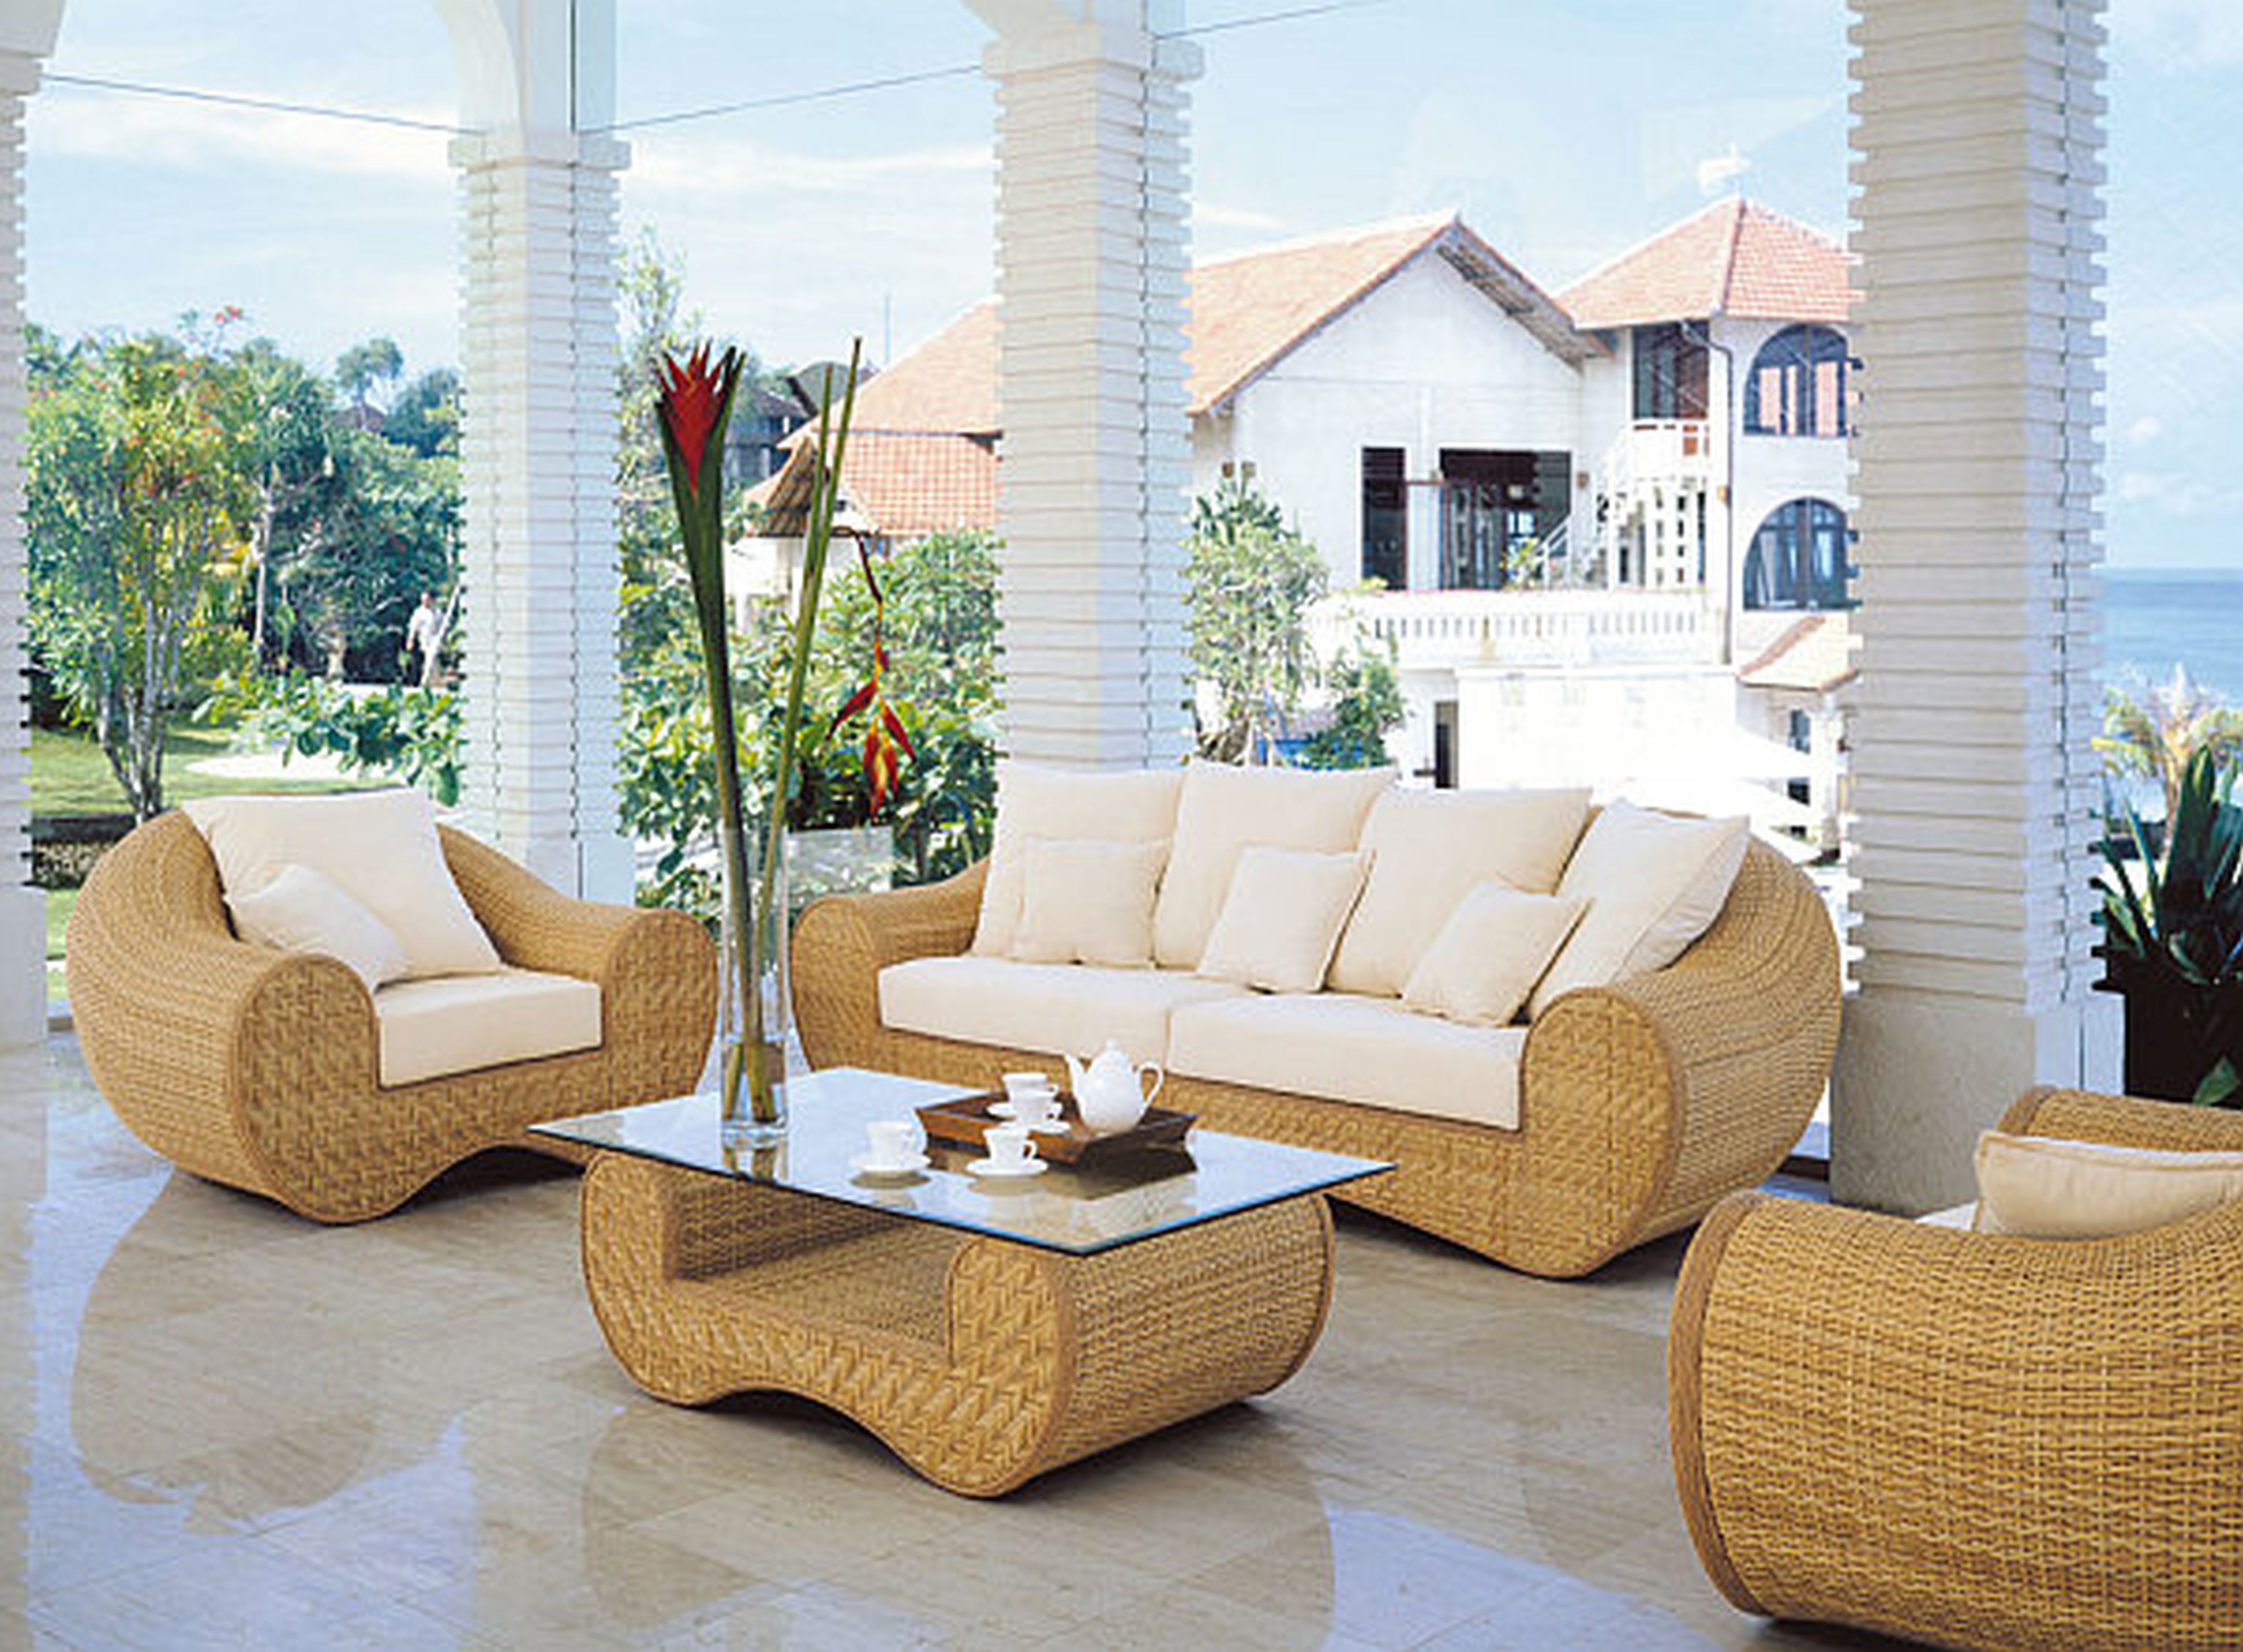 Natural And Traditional Indoor Wicker Furniture For Interior Decor Idea:  Cream Rattan With White Cuhsion